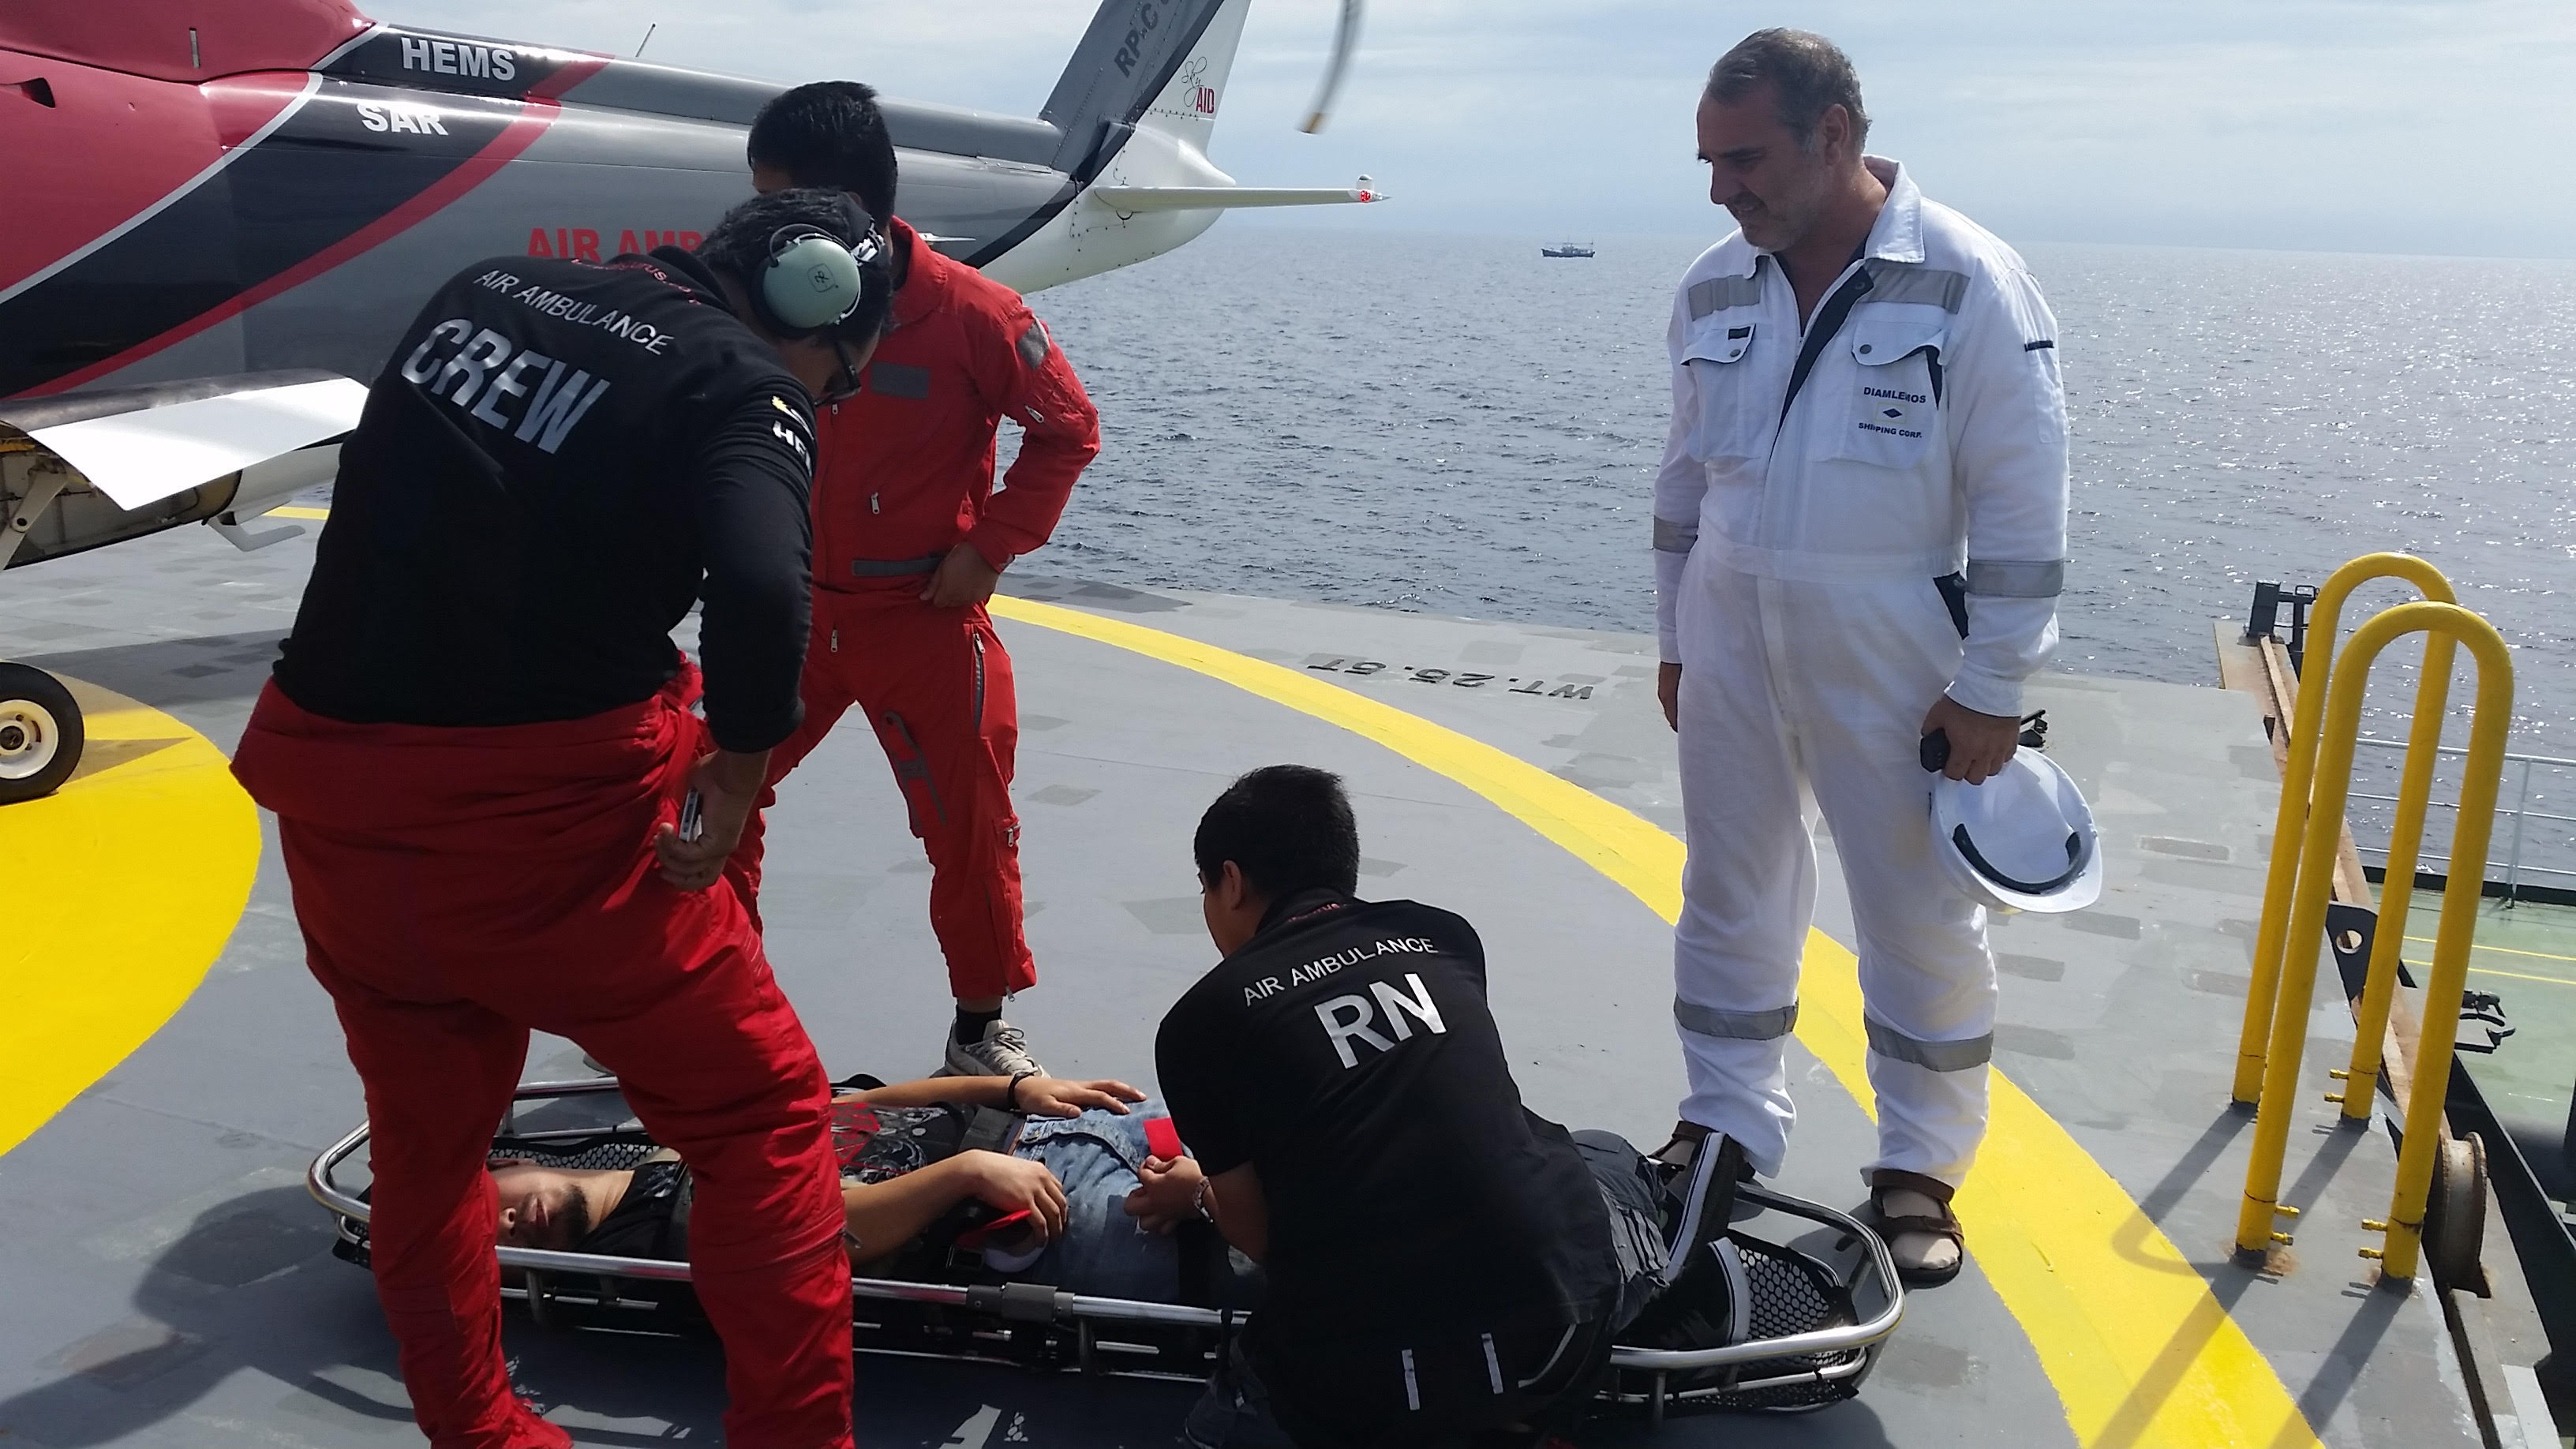 Medevac Extraction: A Life Saved At Sea